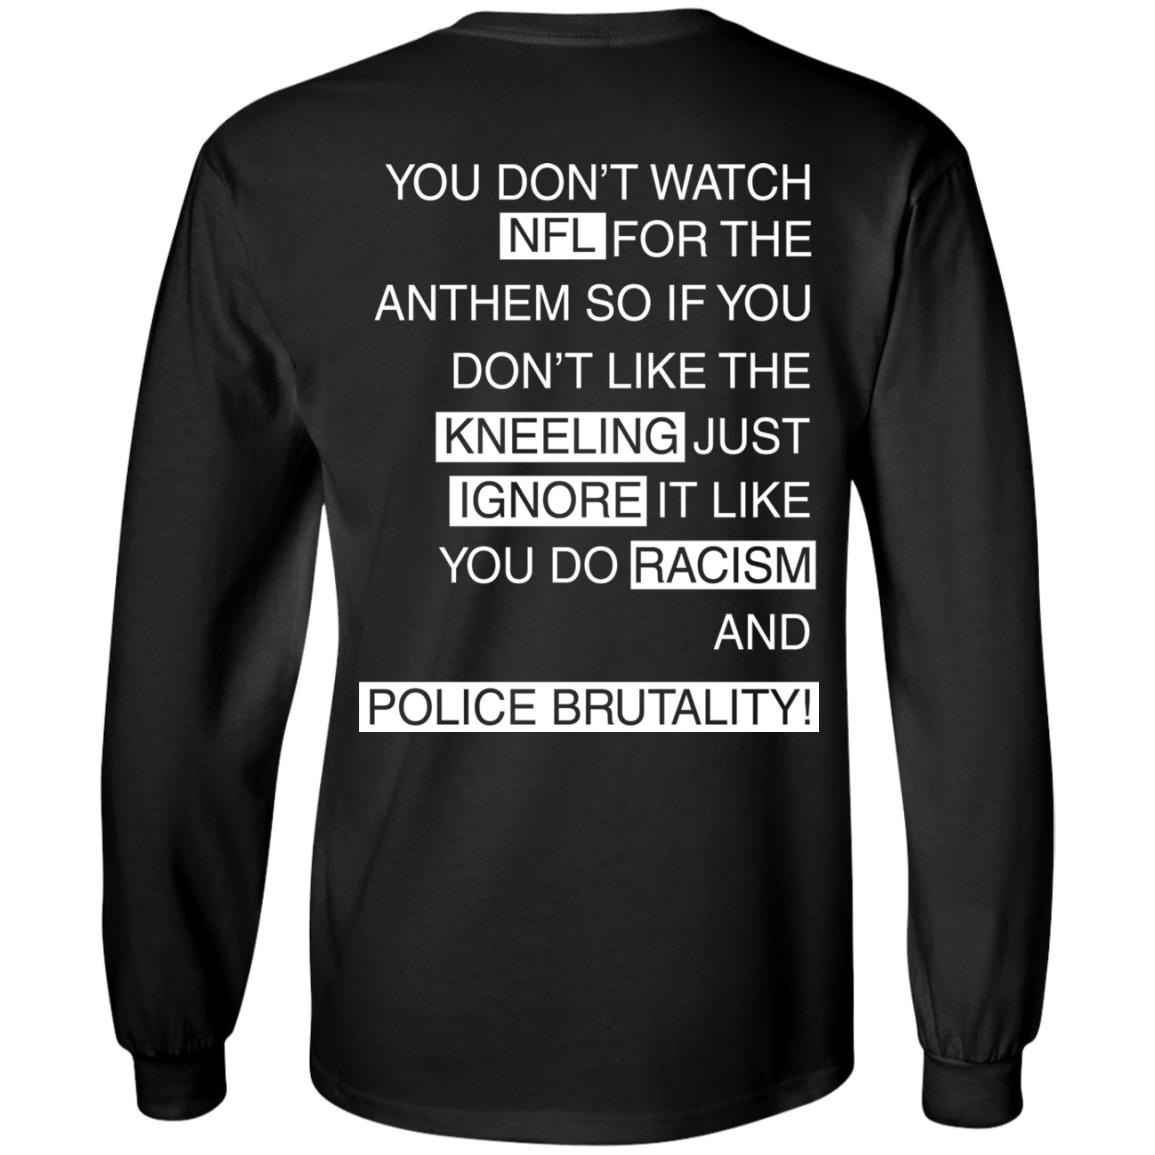 image 402px You Don't Watch NFL For The Anthem Both Side T Shirts, Hoodies